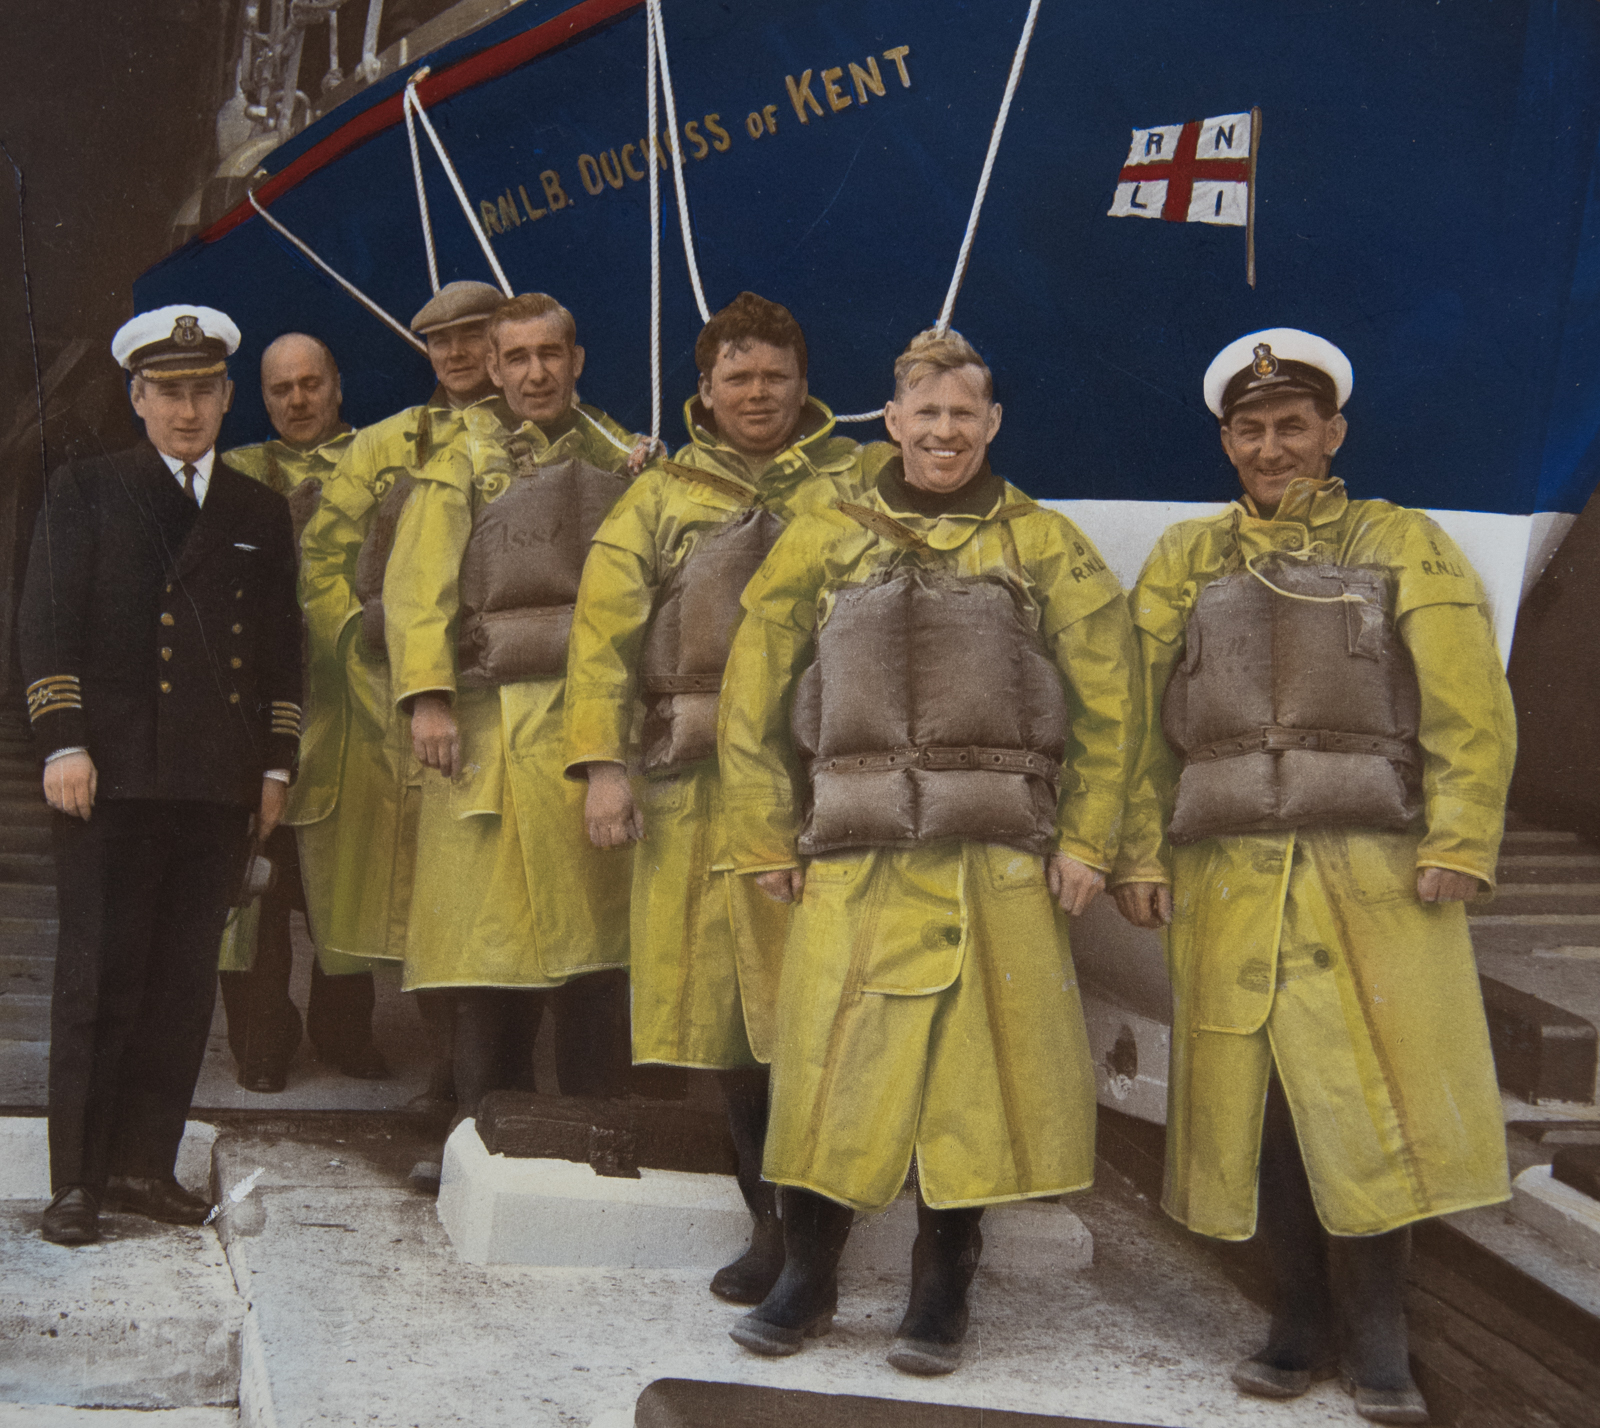 Memorial held for 50th anniversary of lifeboat disaster